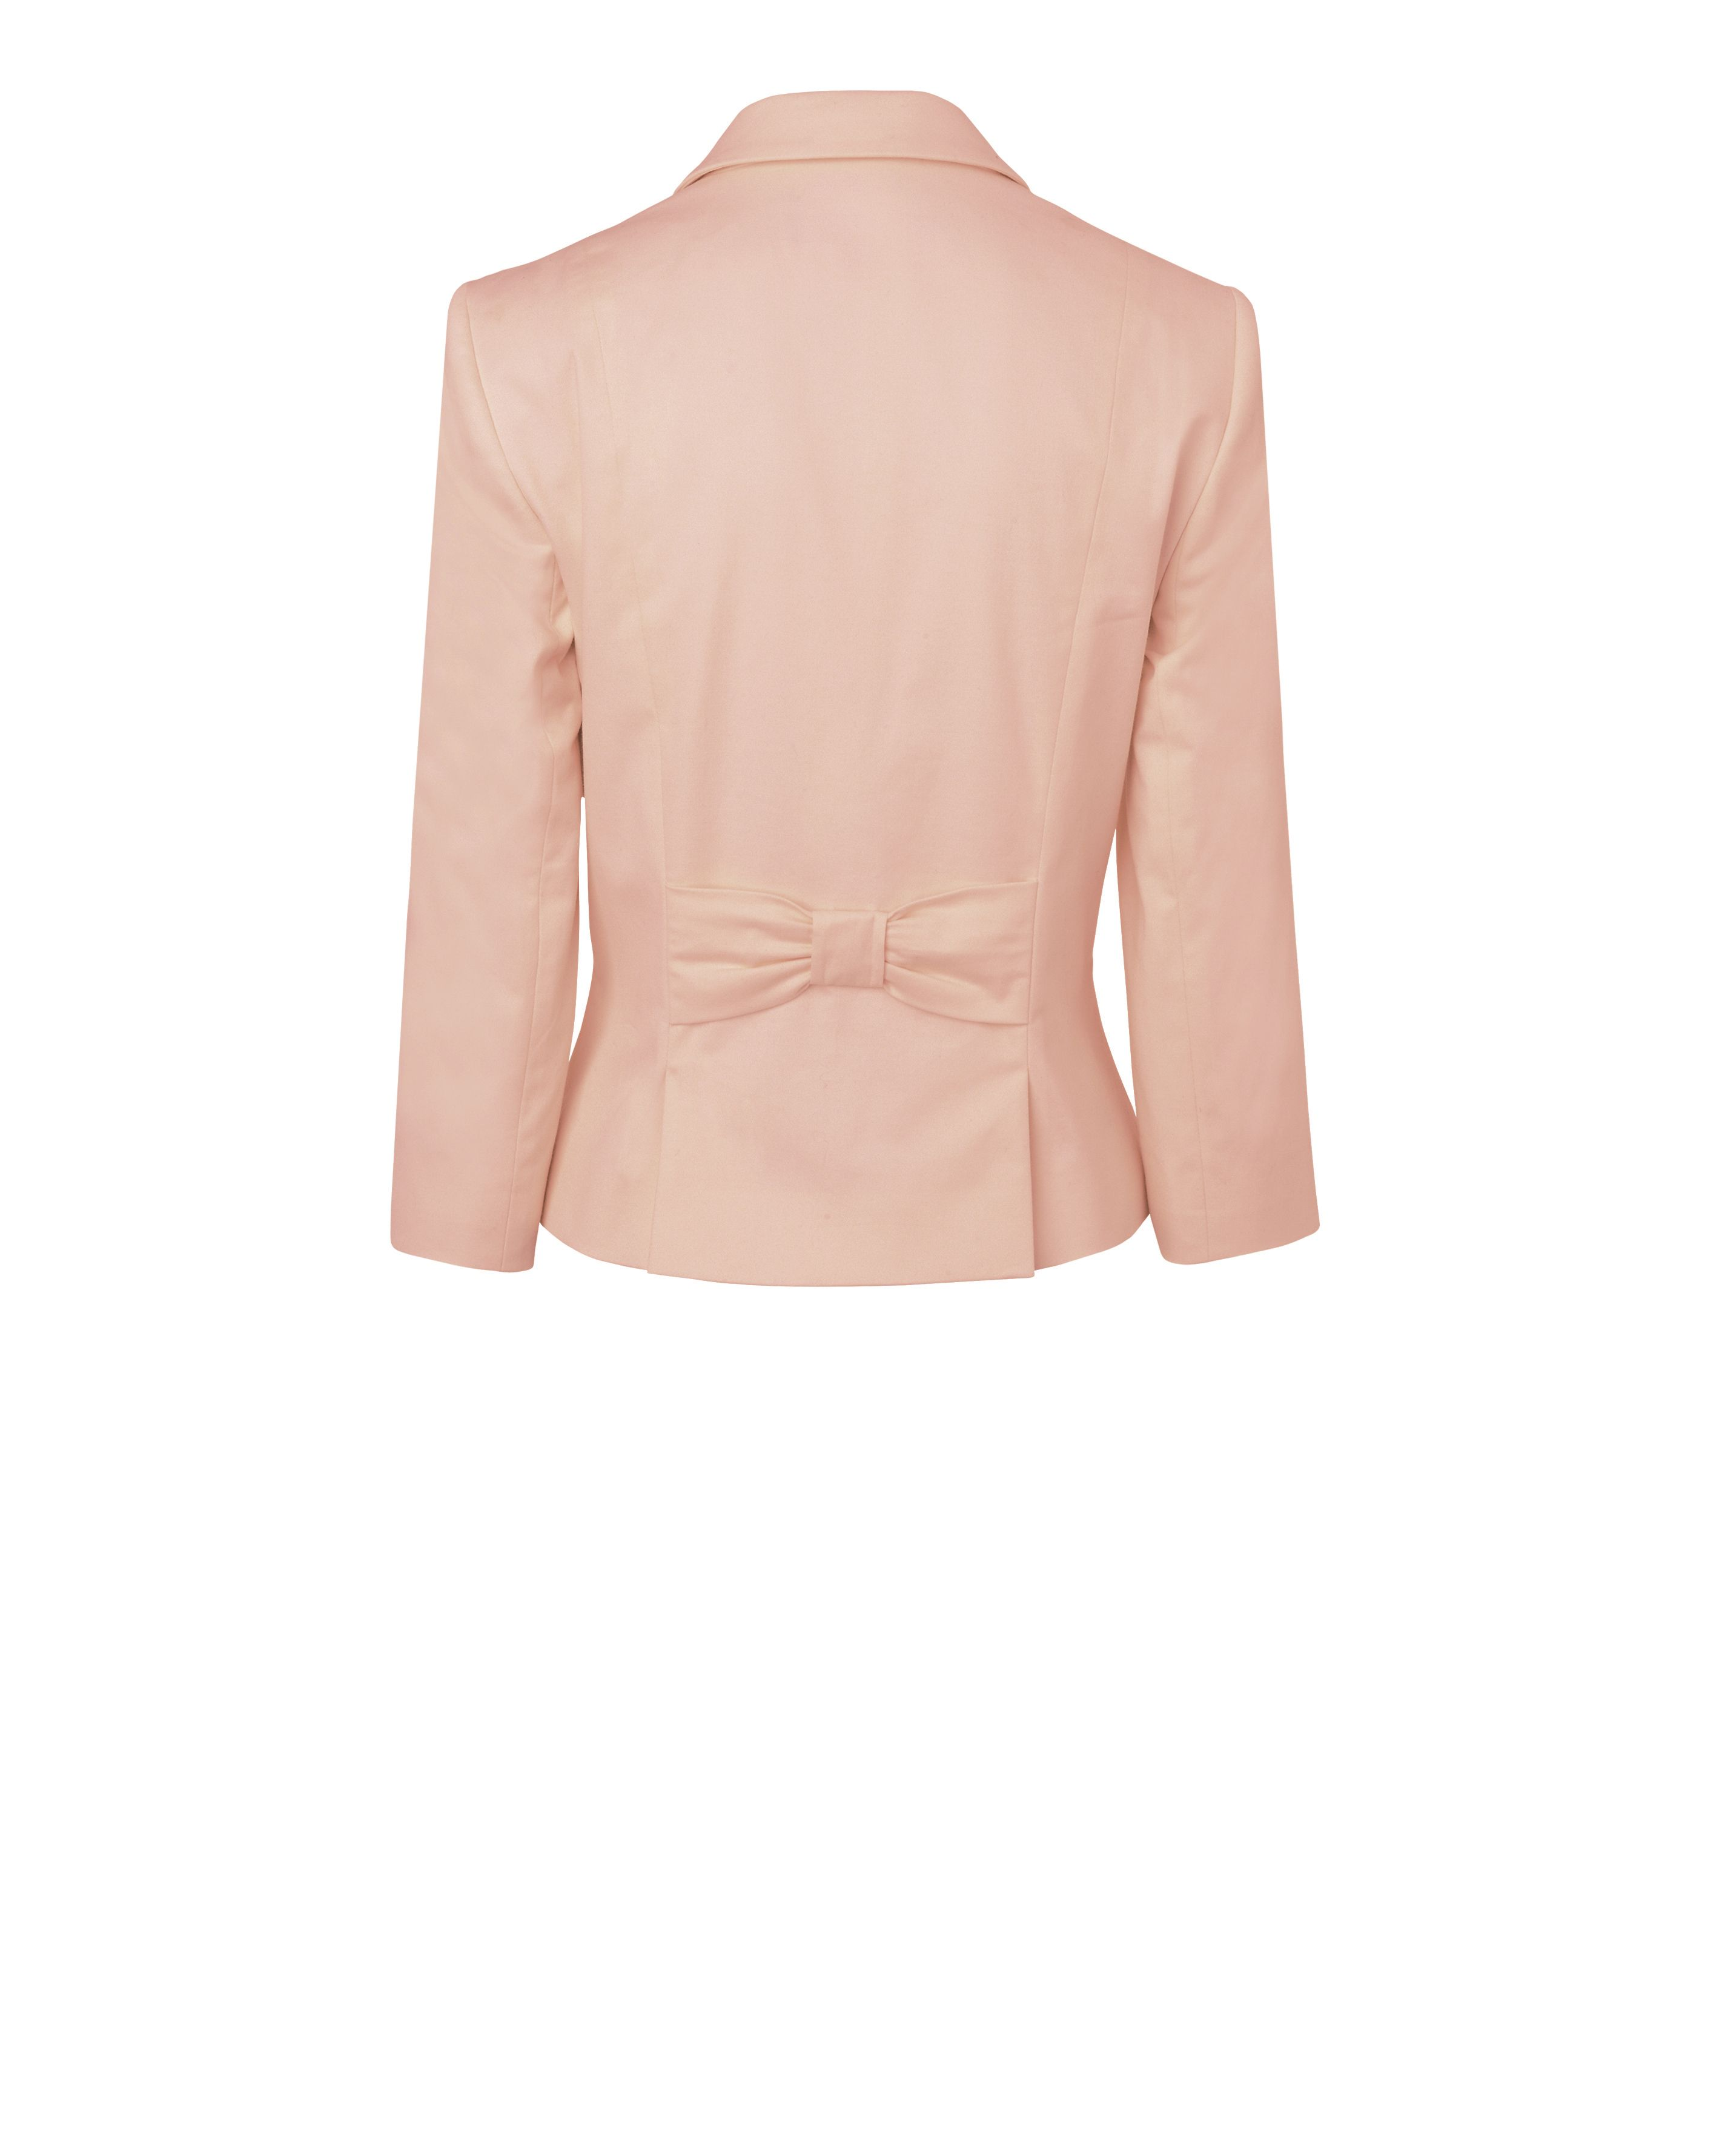 Jacket with bow back detail